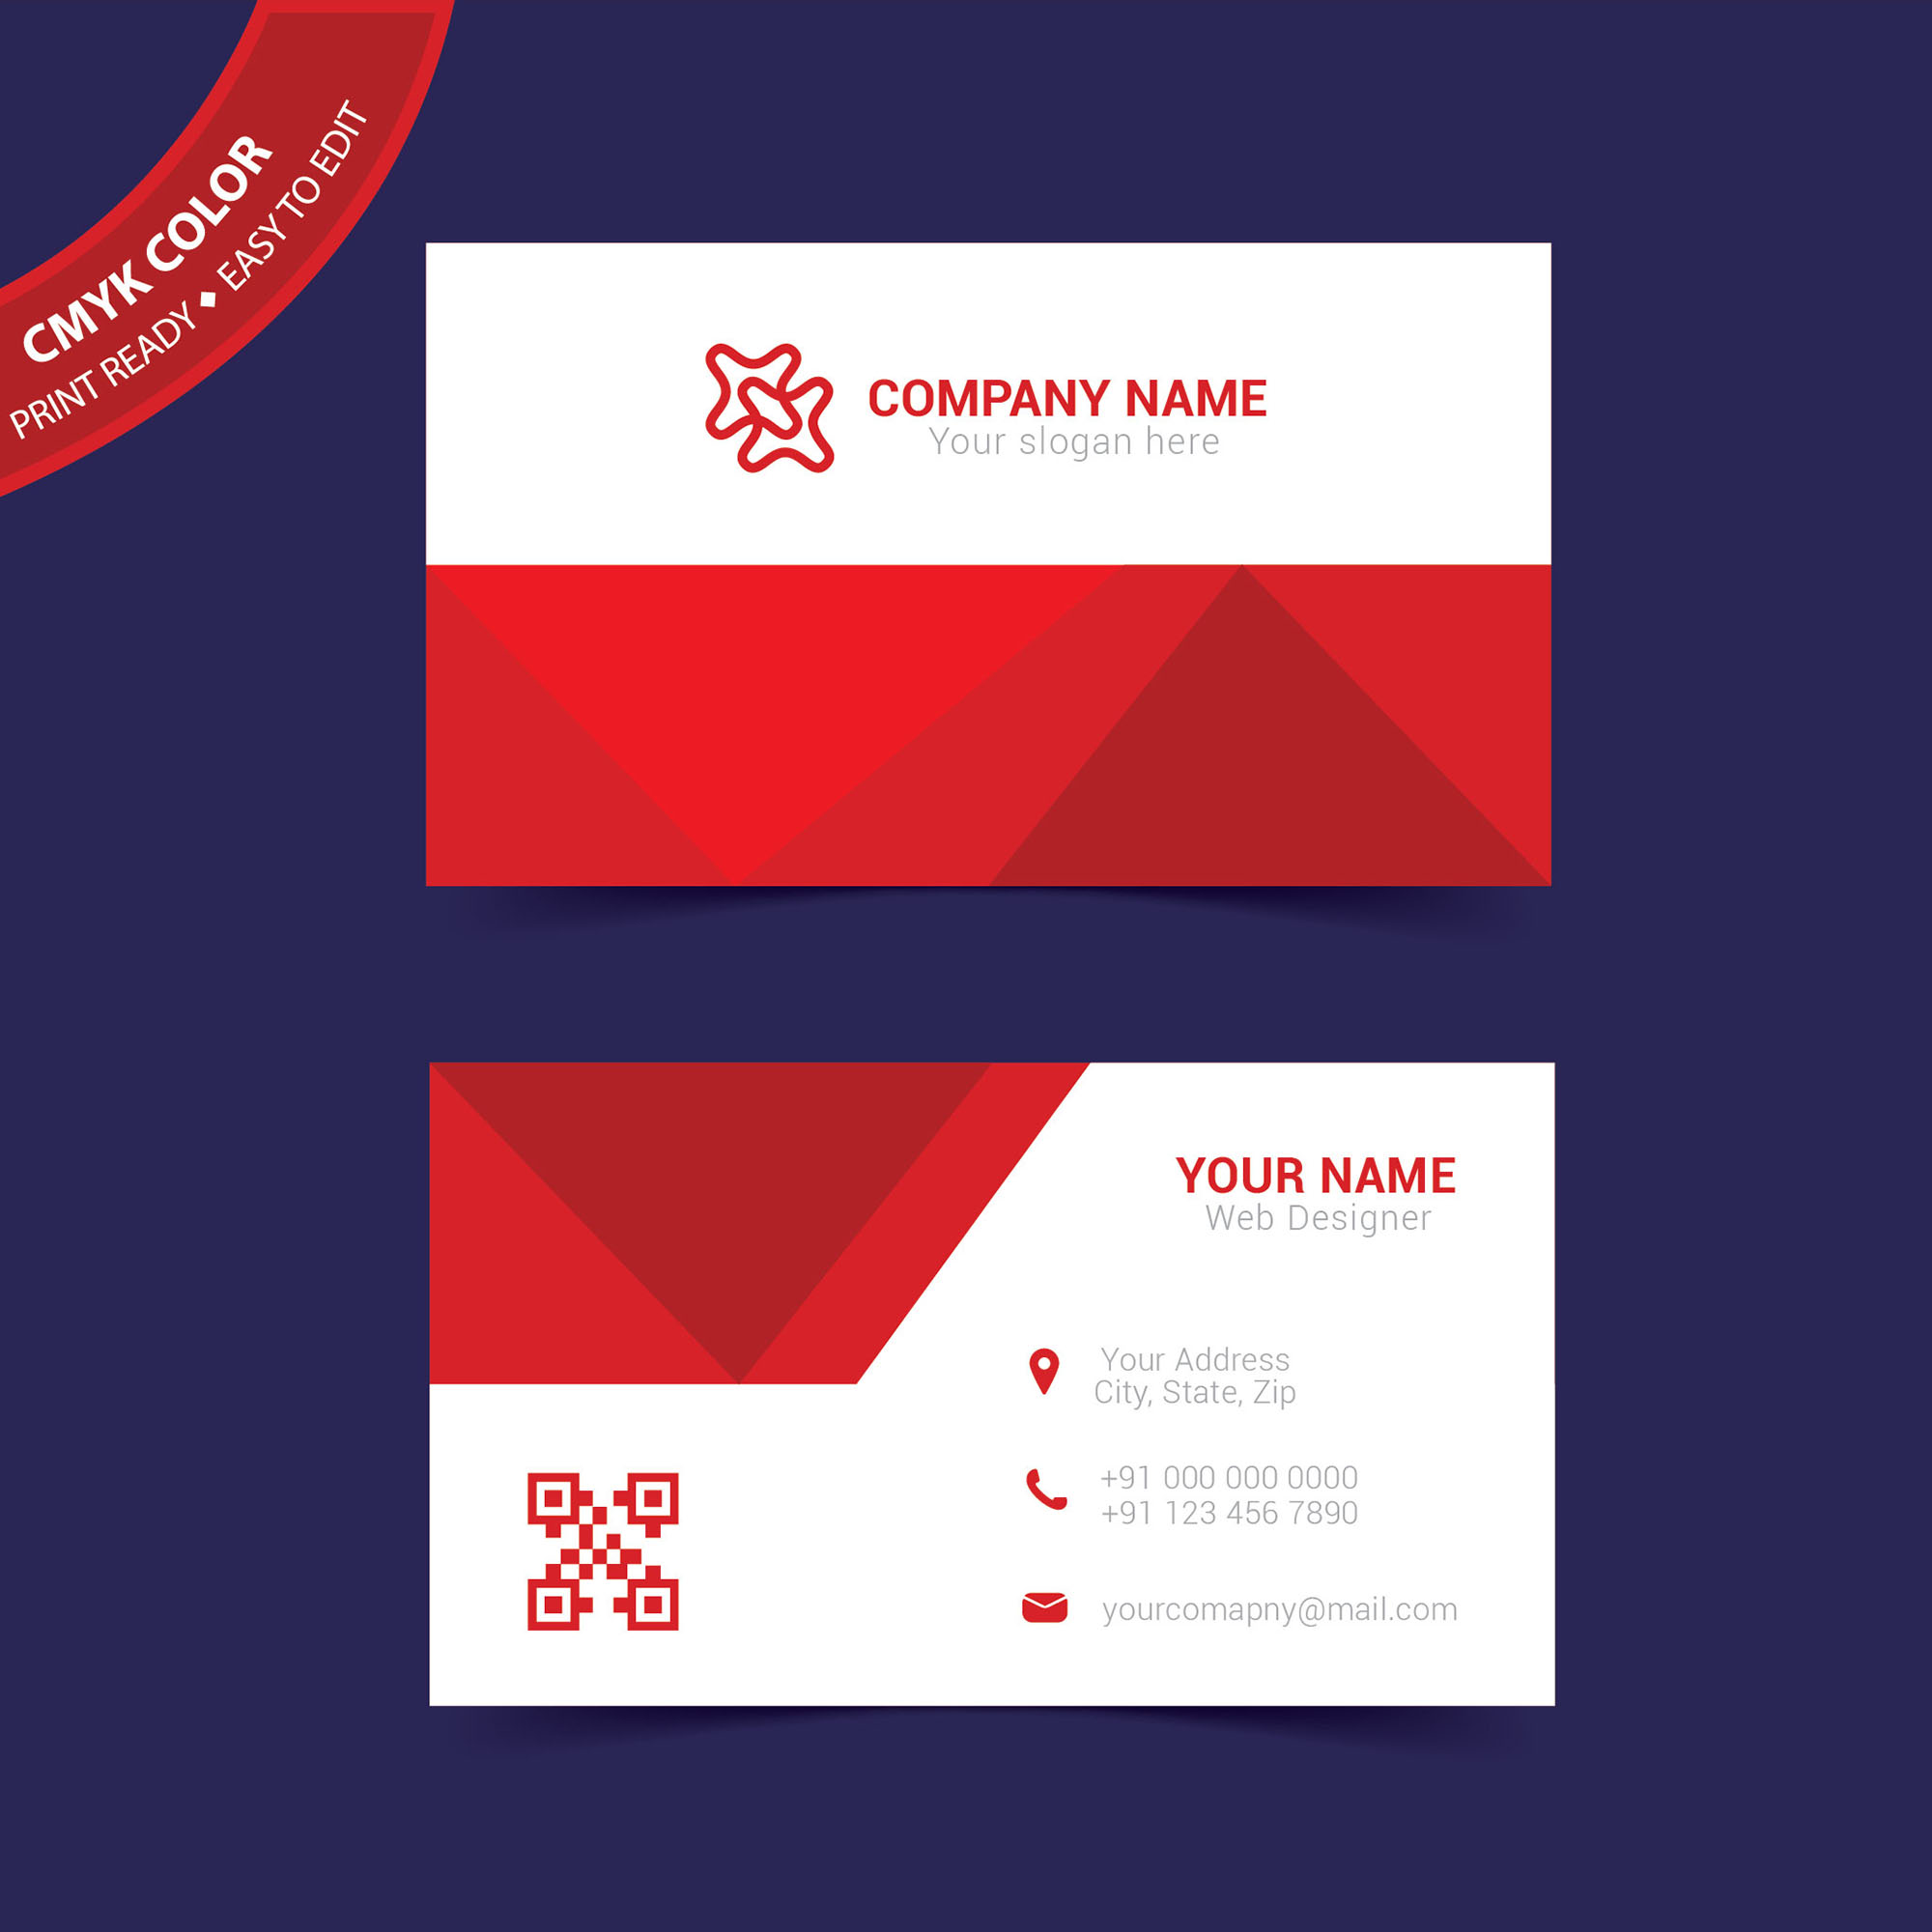 Business card print template free download wisxi business card business cards business card design business card template design templates accmission Choice Image